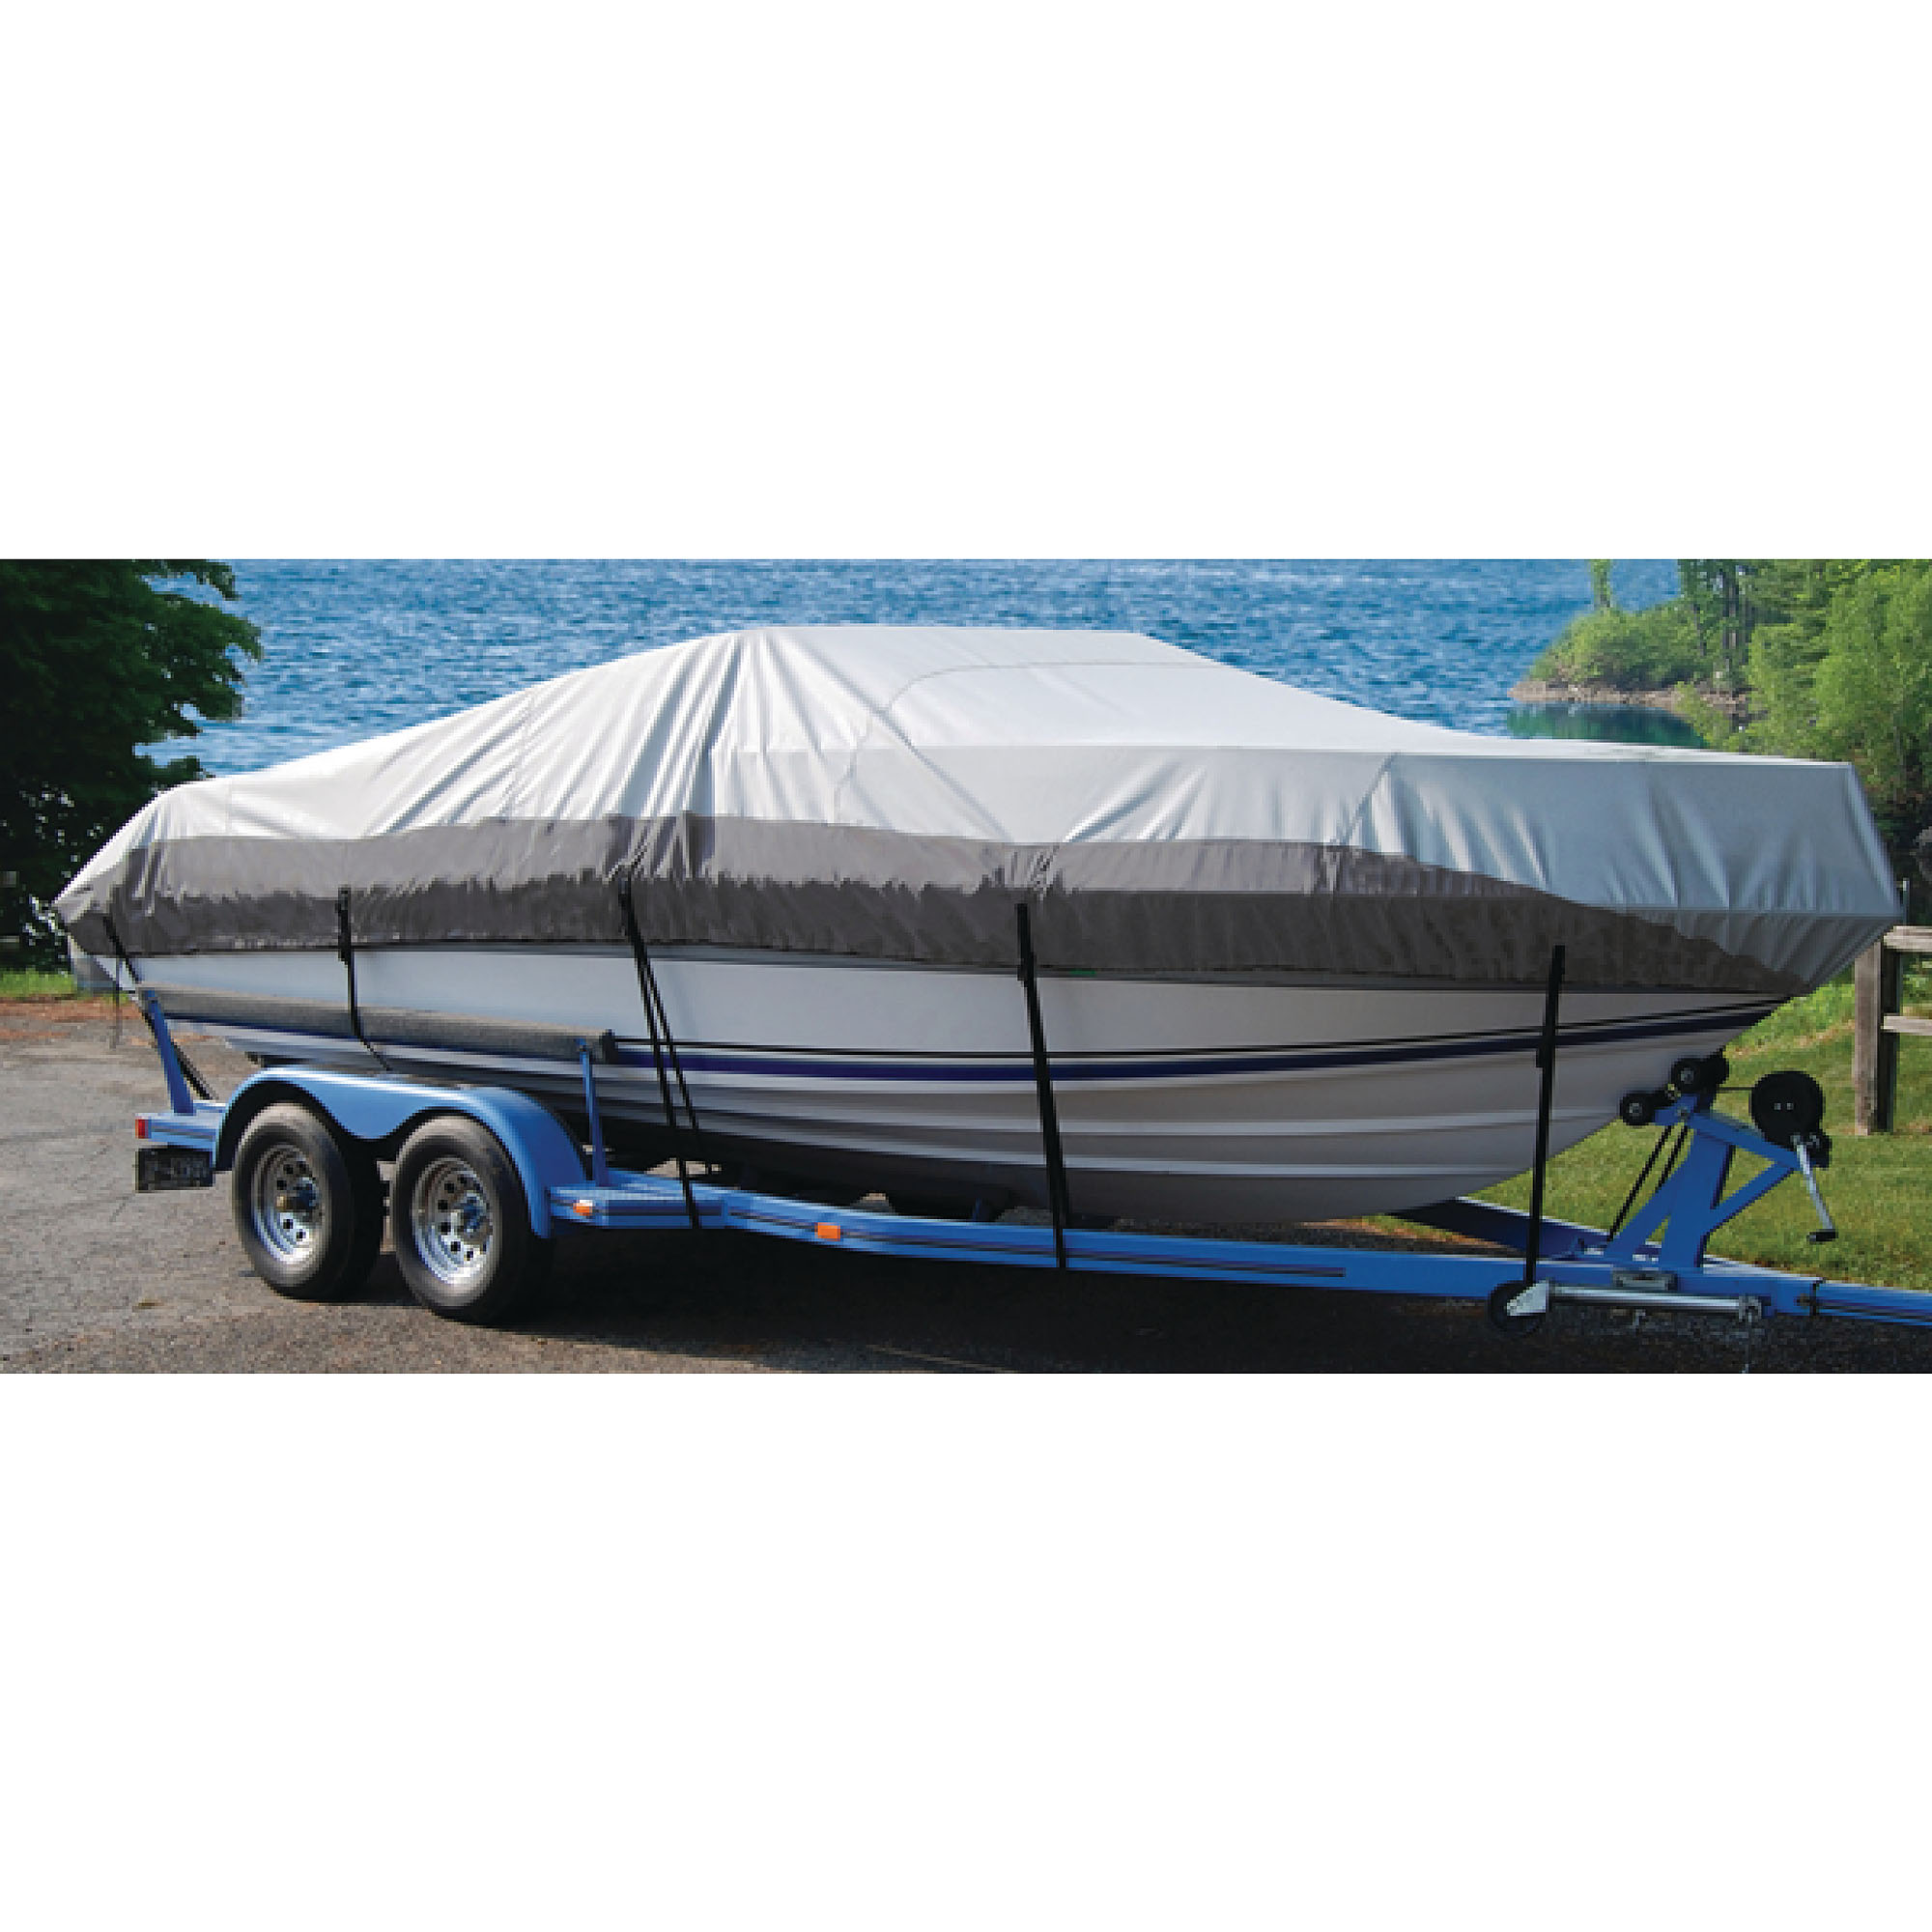 Taylor Heavy Duty Polyester 2-Tone Color Fabric BoatGuard Eclipse Boat Cover with Storage Bag, Tie-Down Straps and... by Taylor Made Products